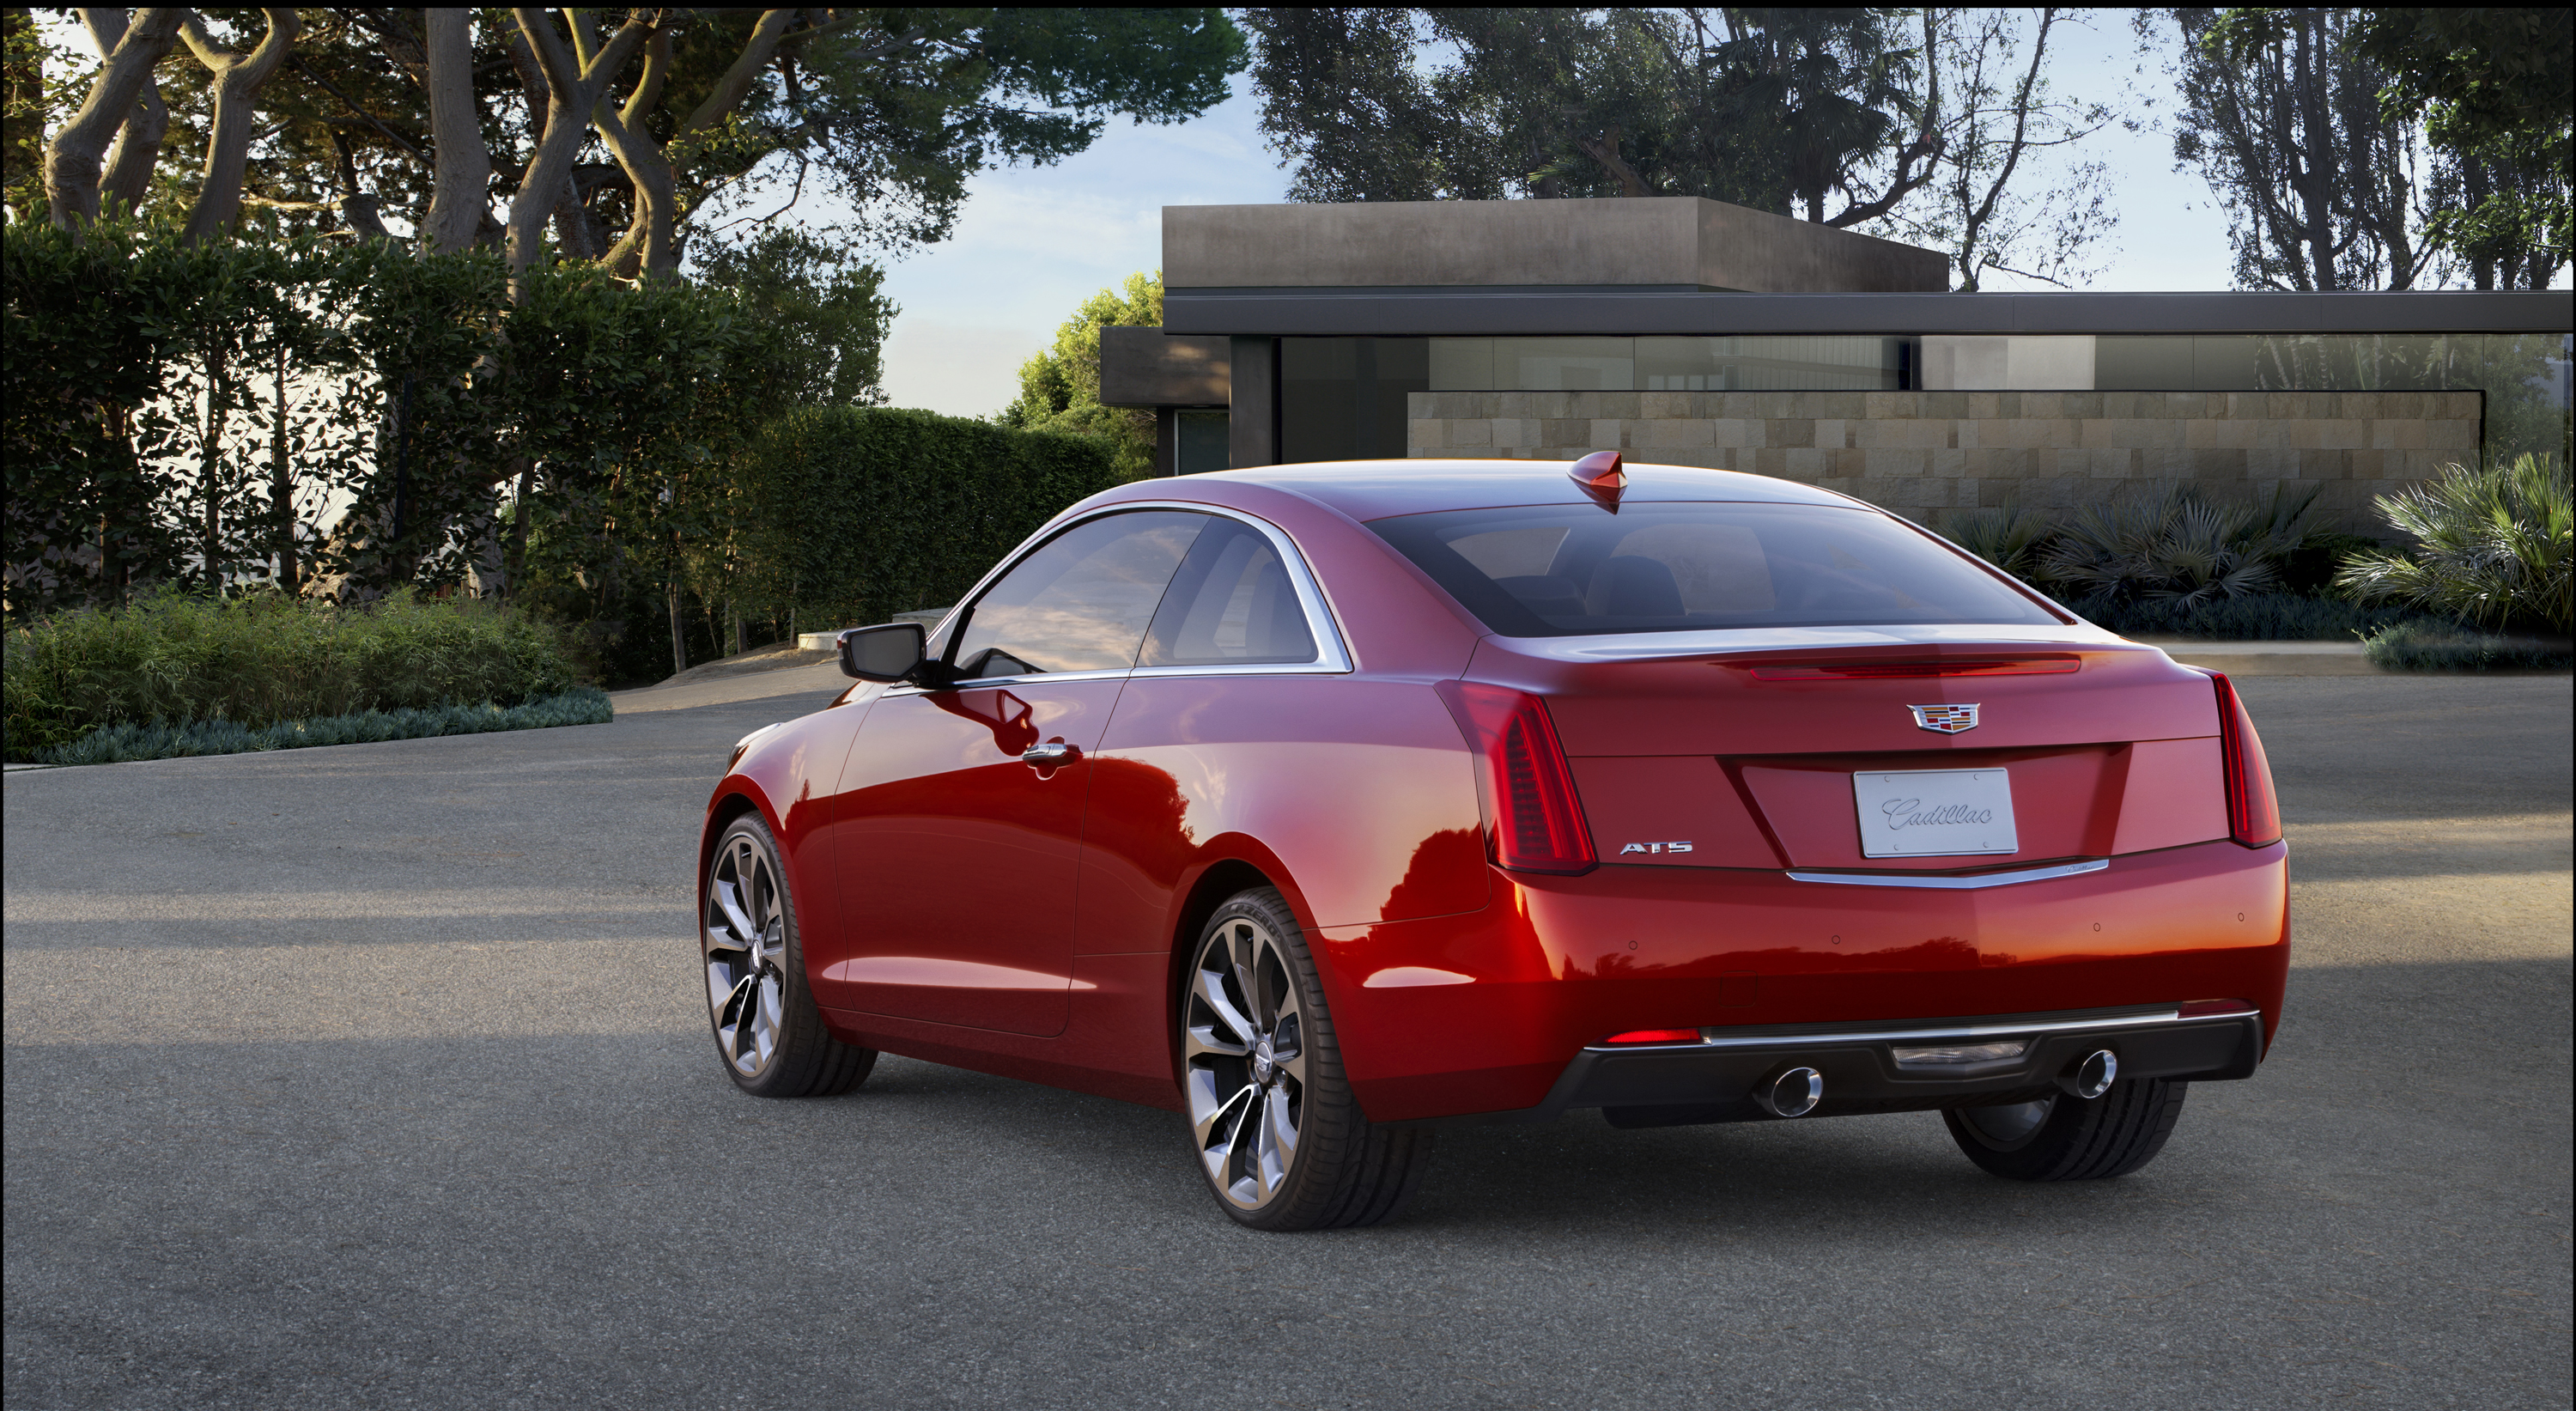 2015 Cadillac ATS Coupe adds OnStar with 4G LTE